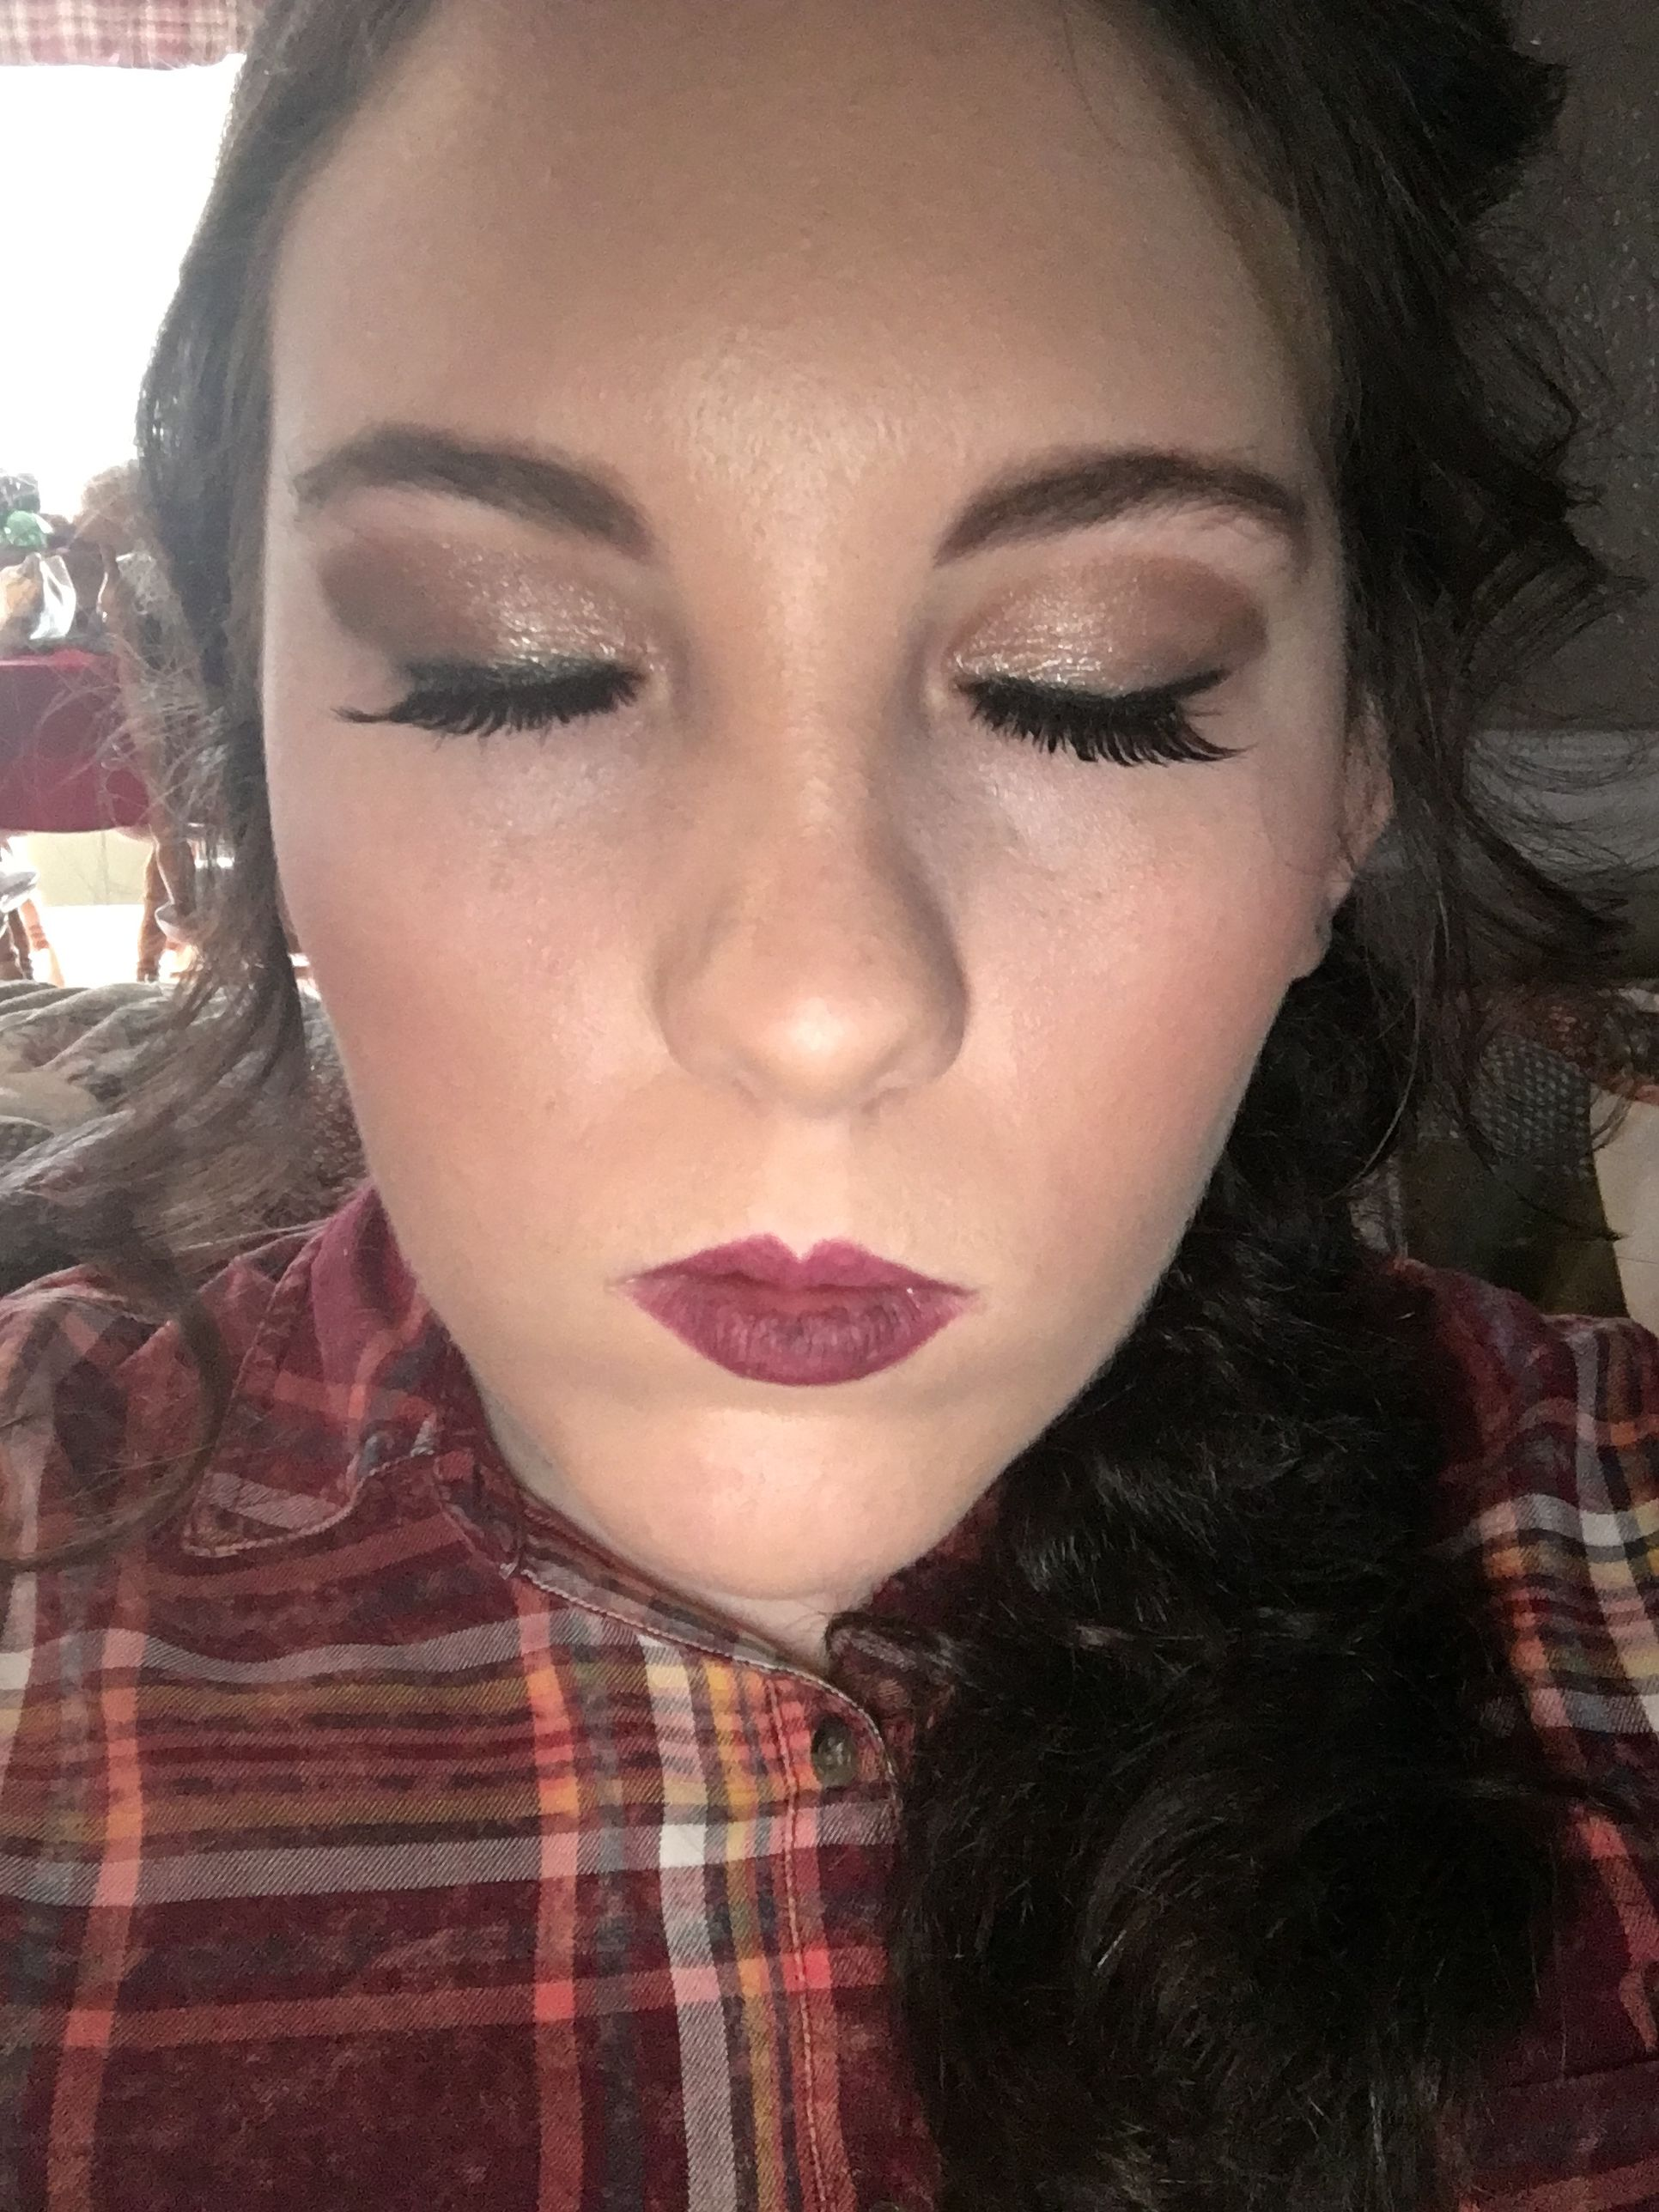 Wedding makeup done!